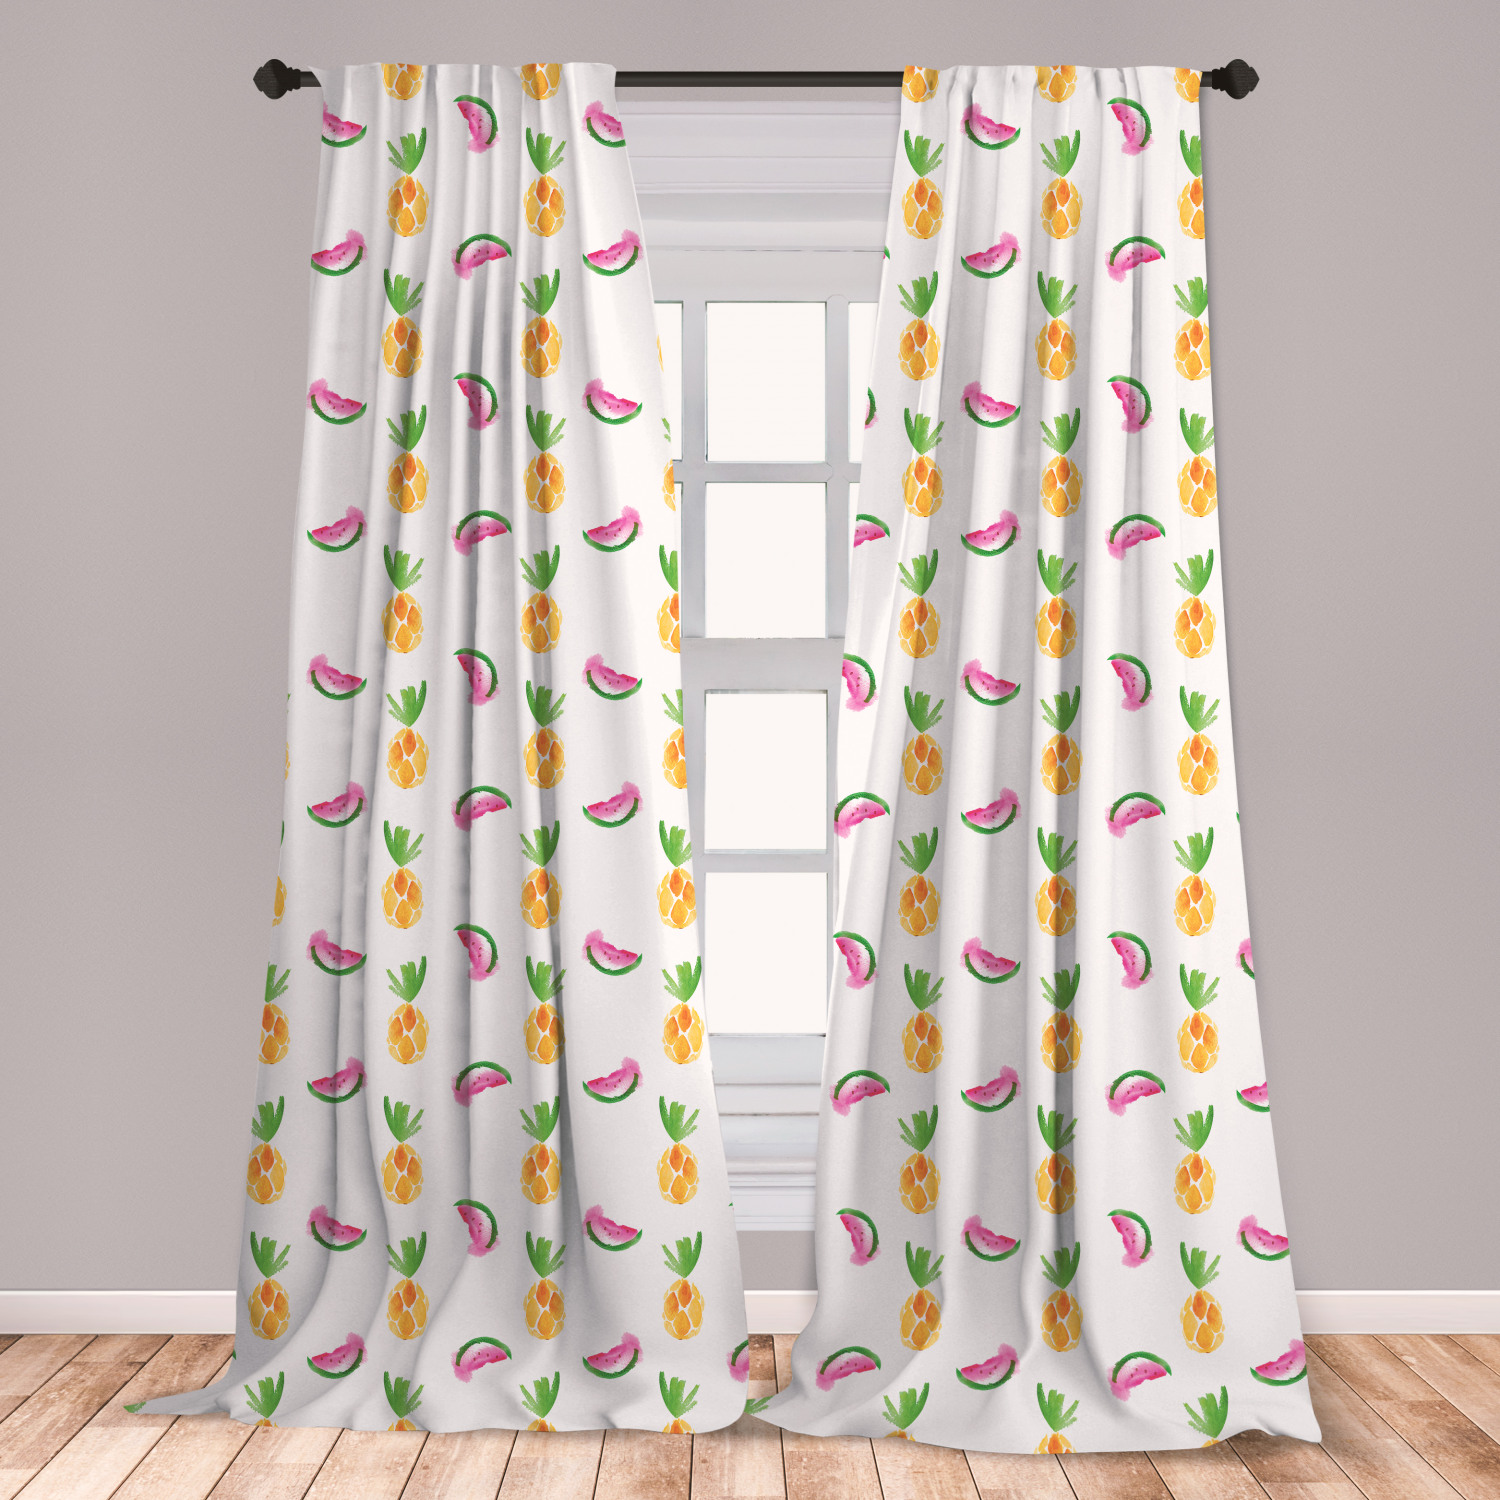 Pineapple Curtains 2 Panels Set, Pineapple And Watermelon